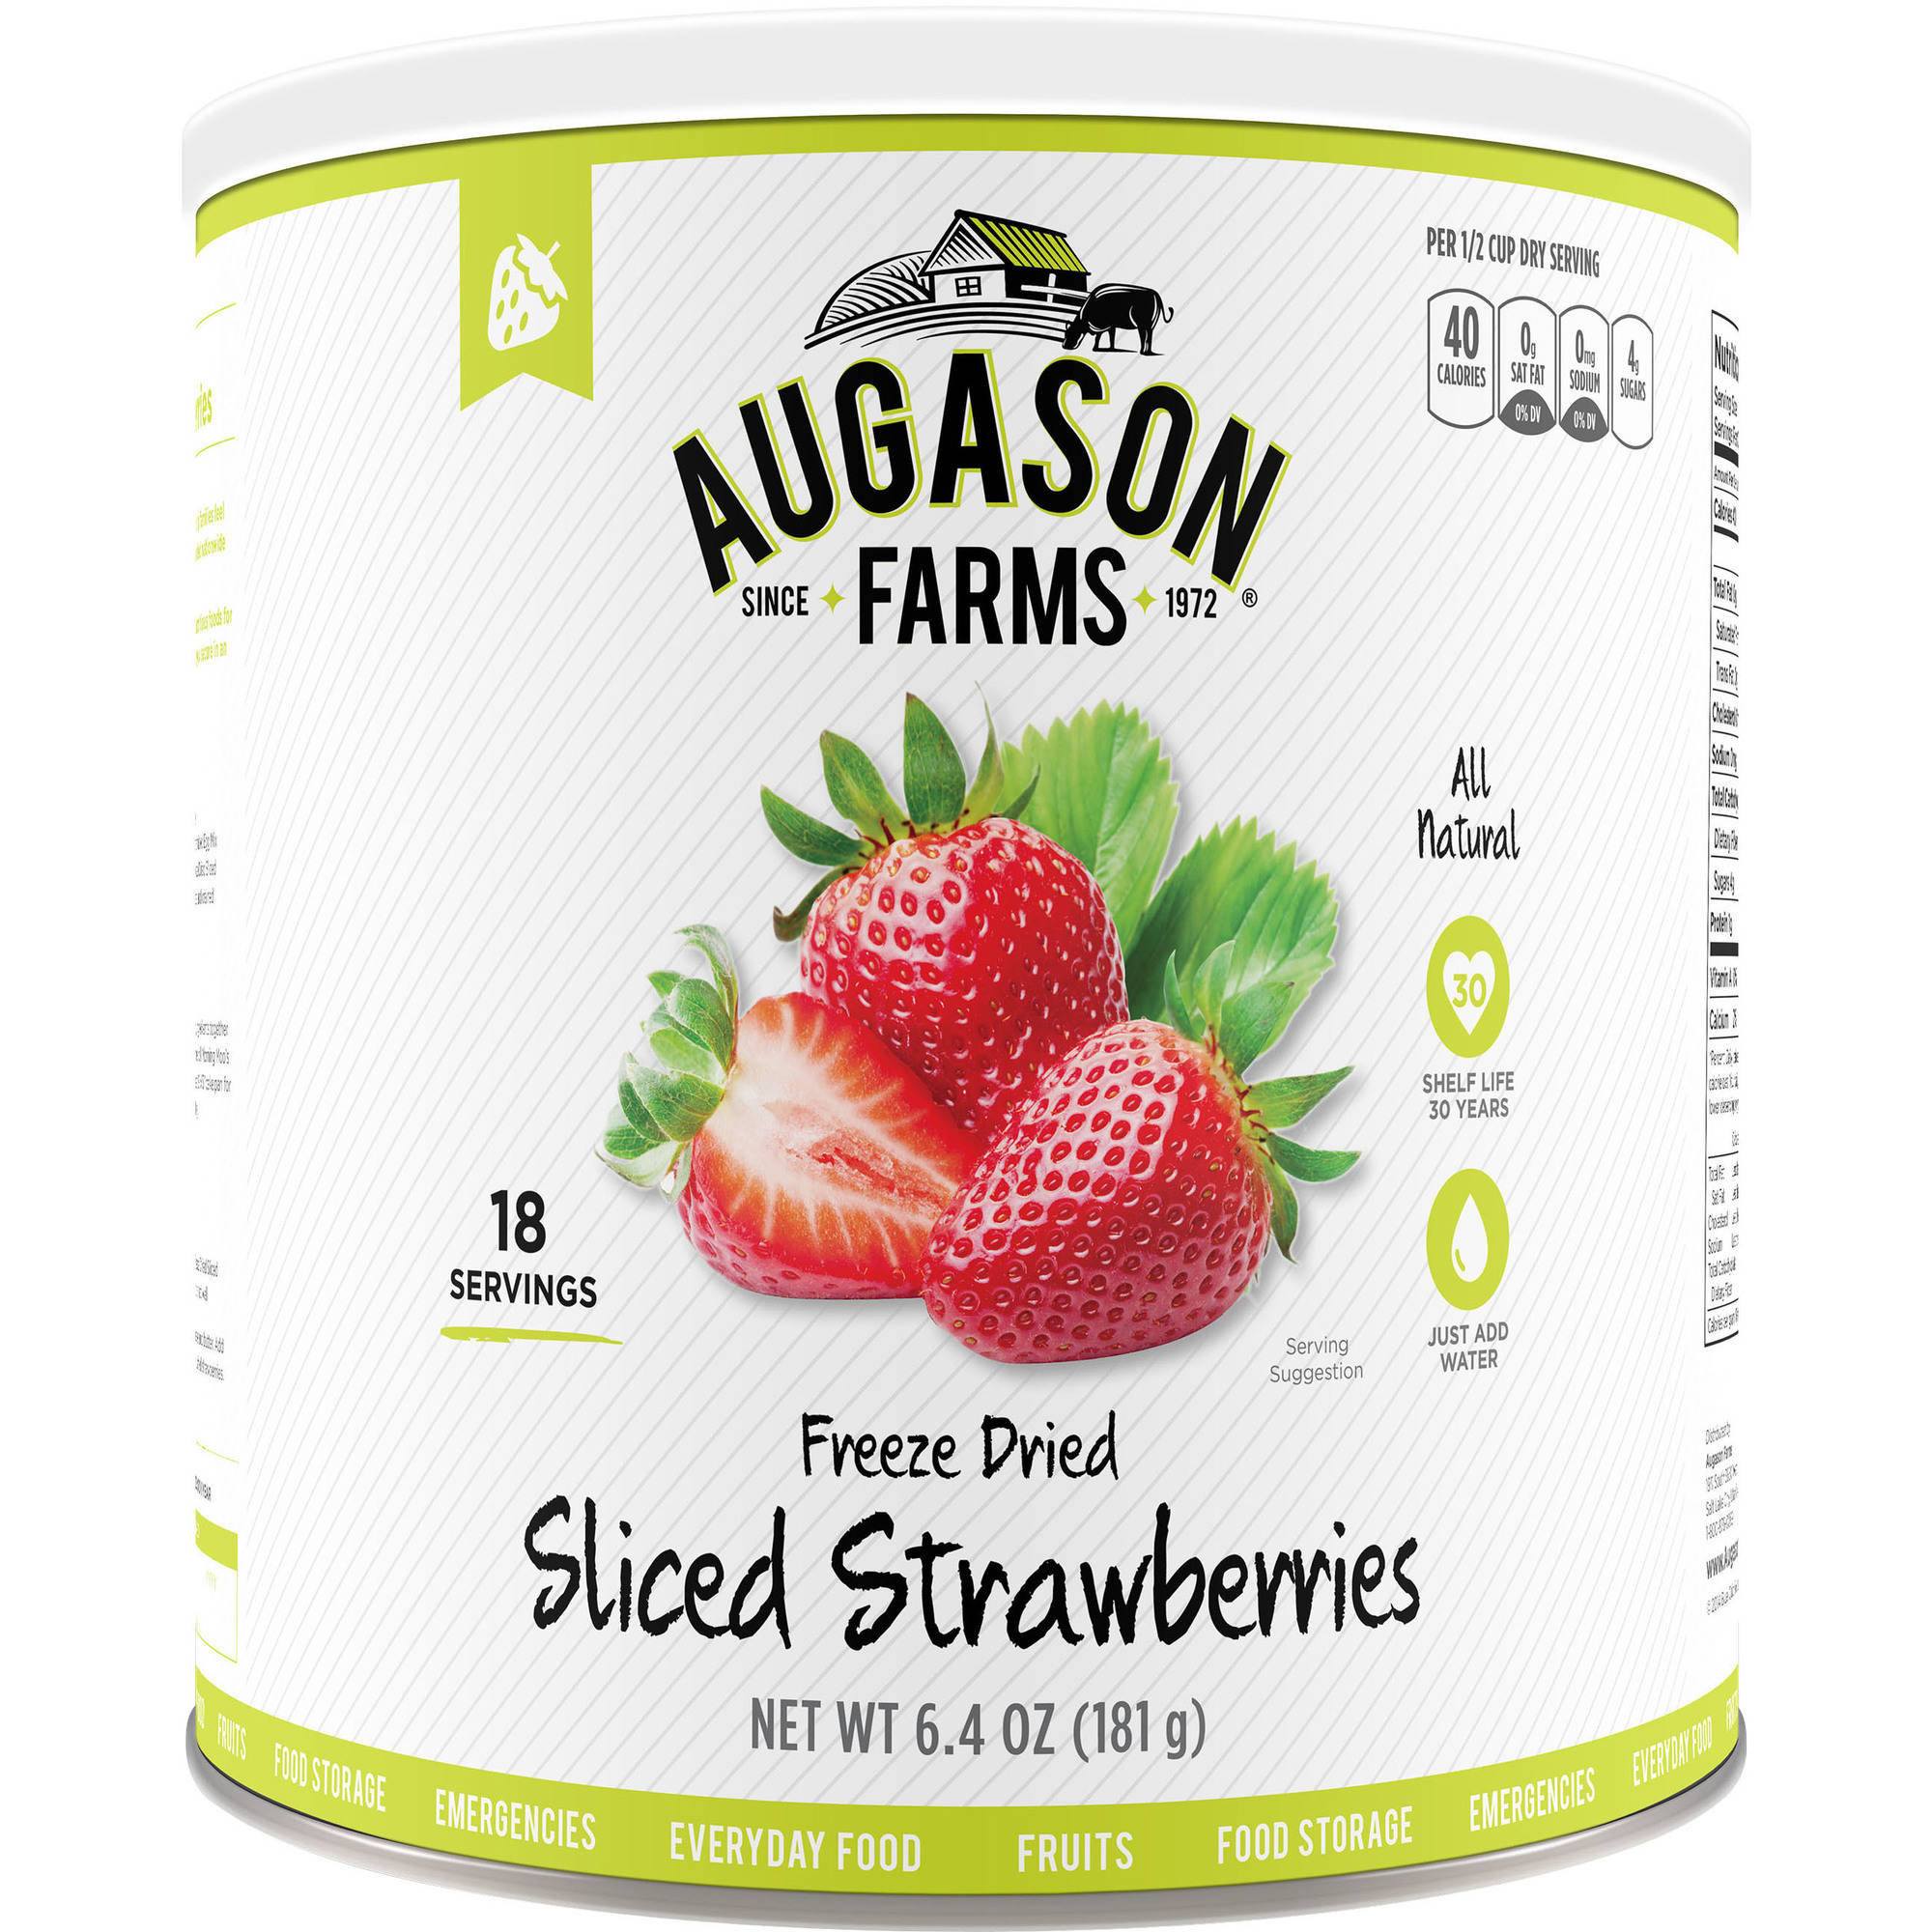 Augason Farms Emergency Food Freeze Dried Sliced Strawberries, 6.4 oz